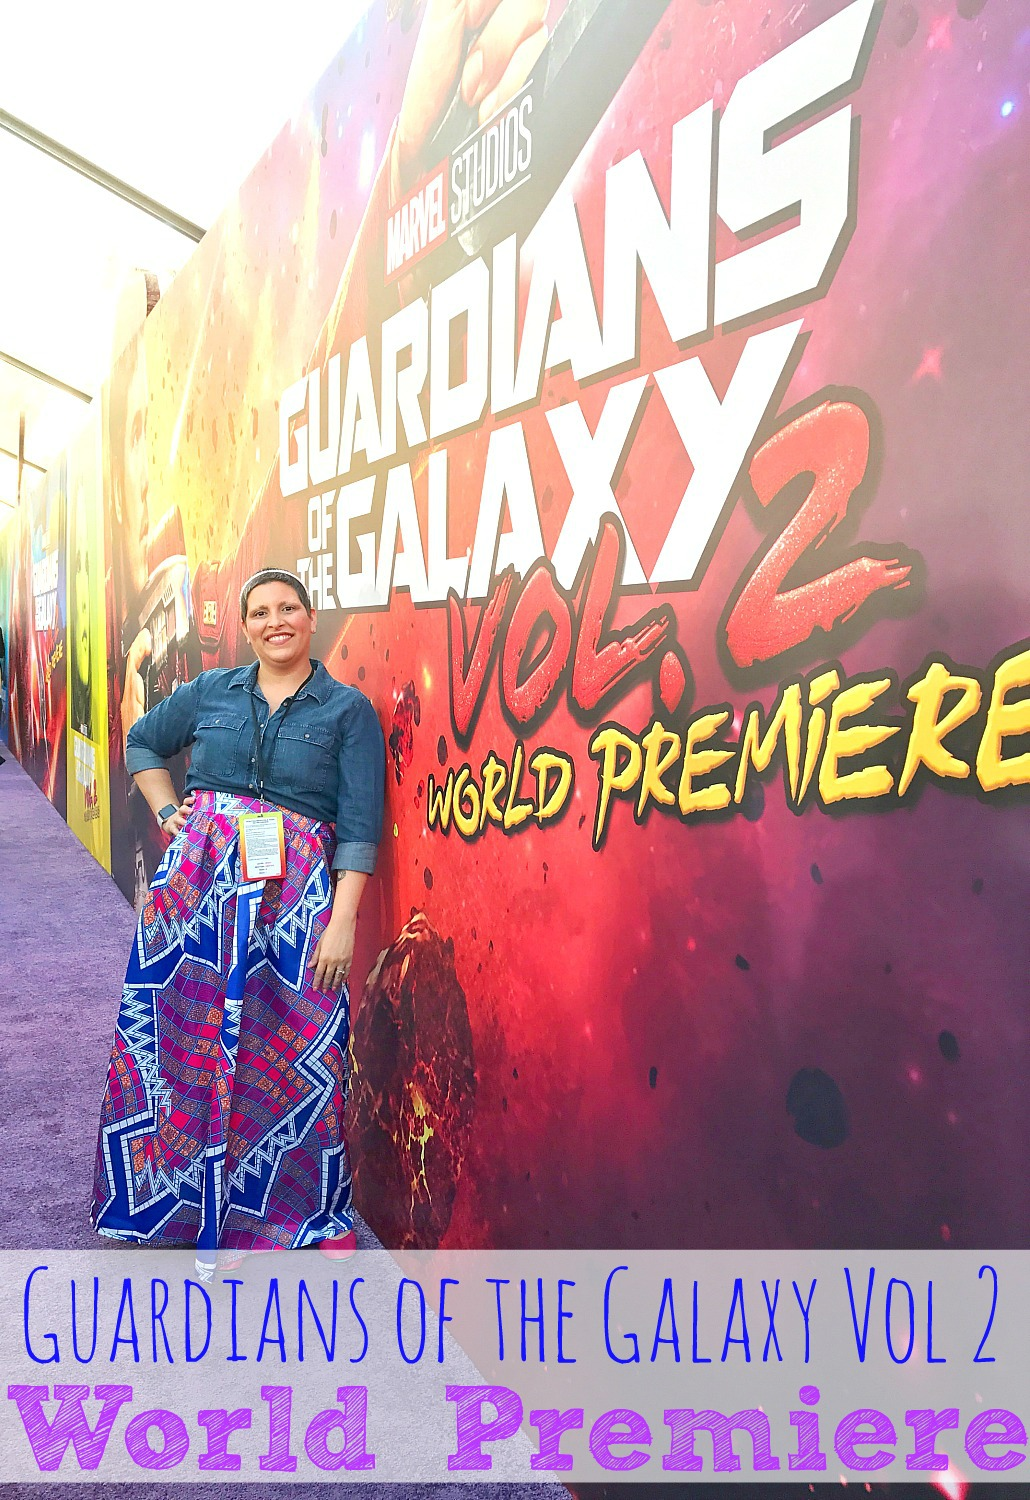 Guardians of the Galaxy Vol 2 World Premiere Experience